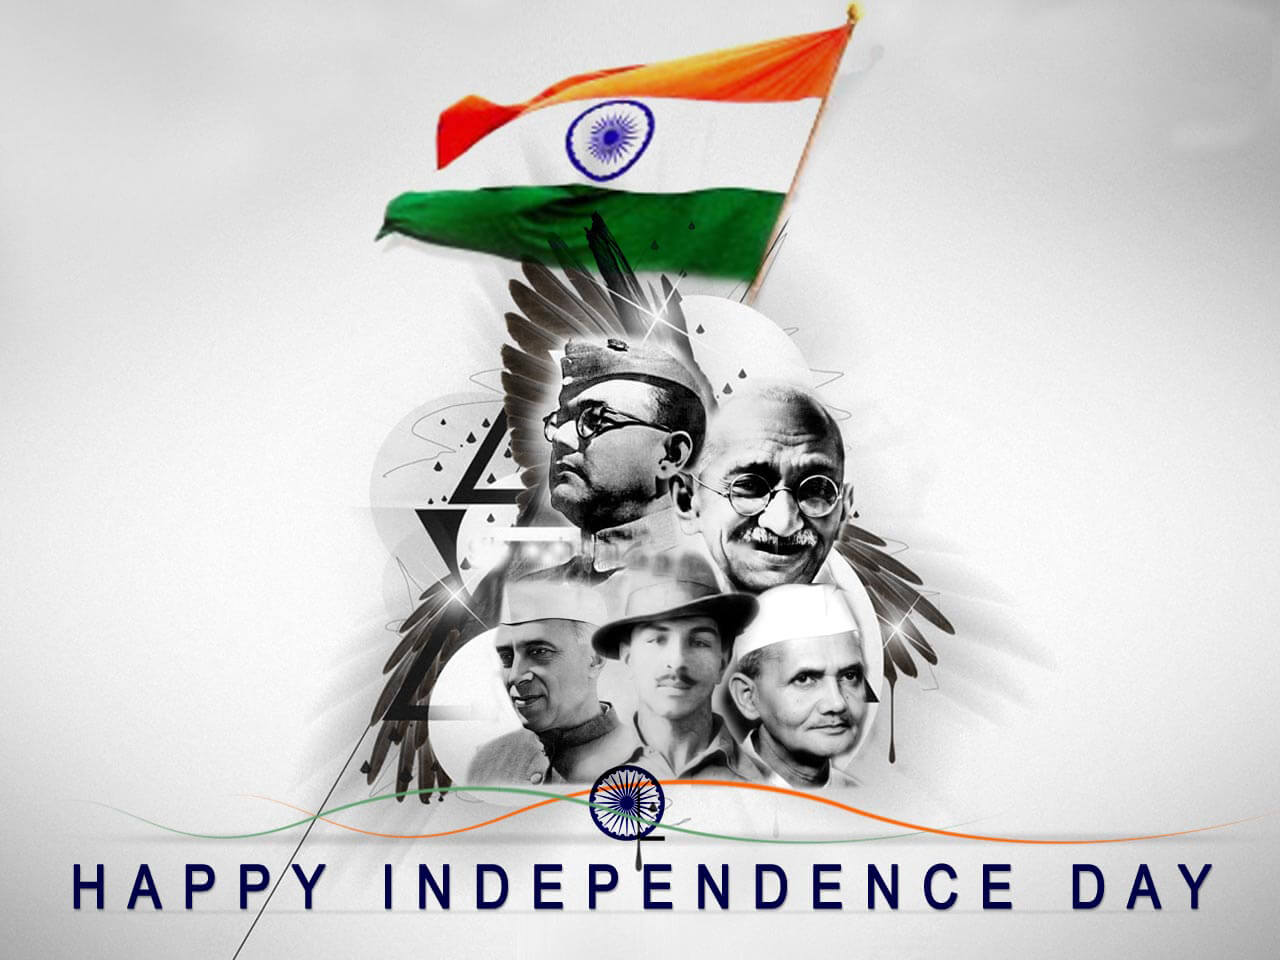 Happy Independence Day featured image